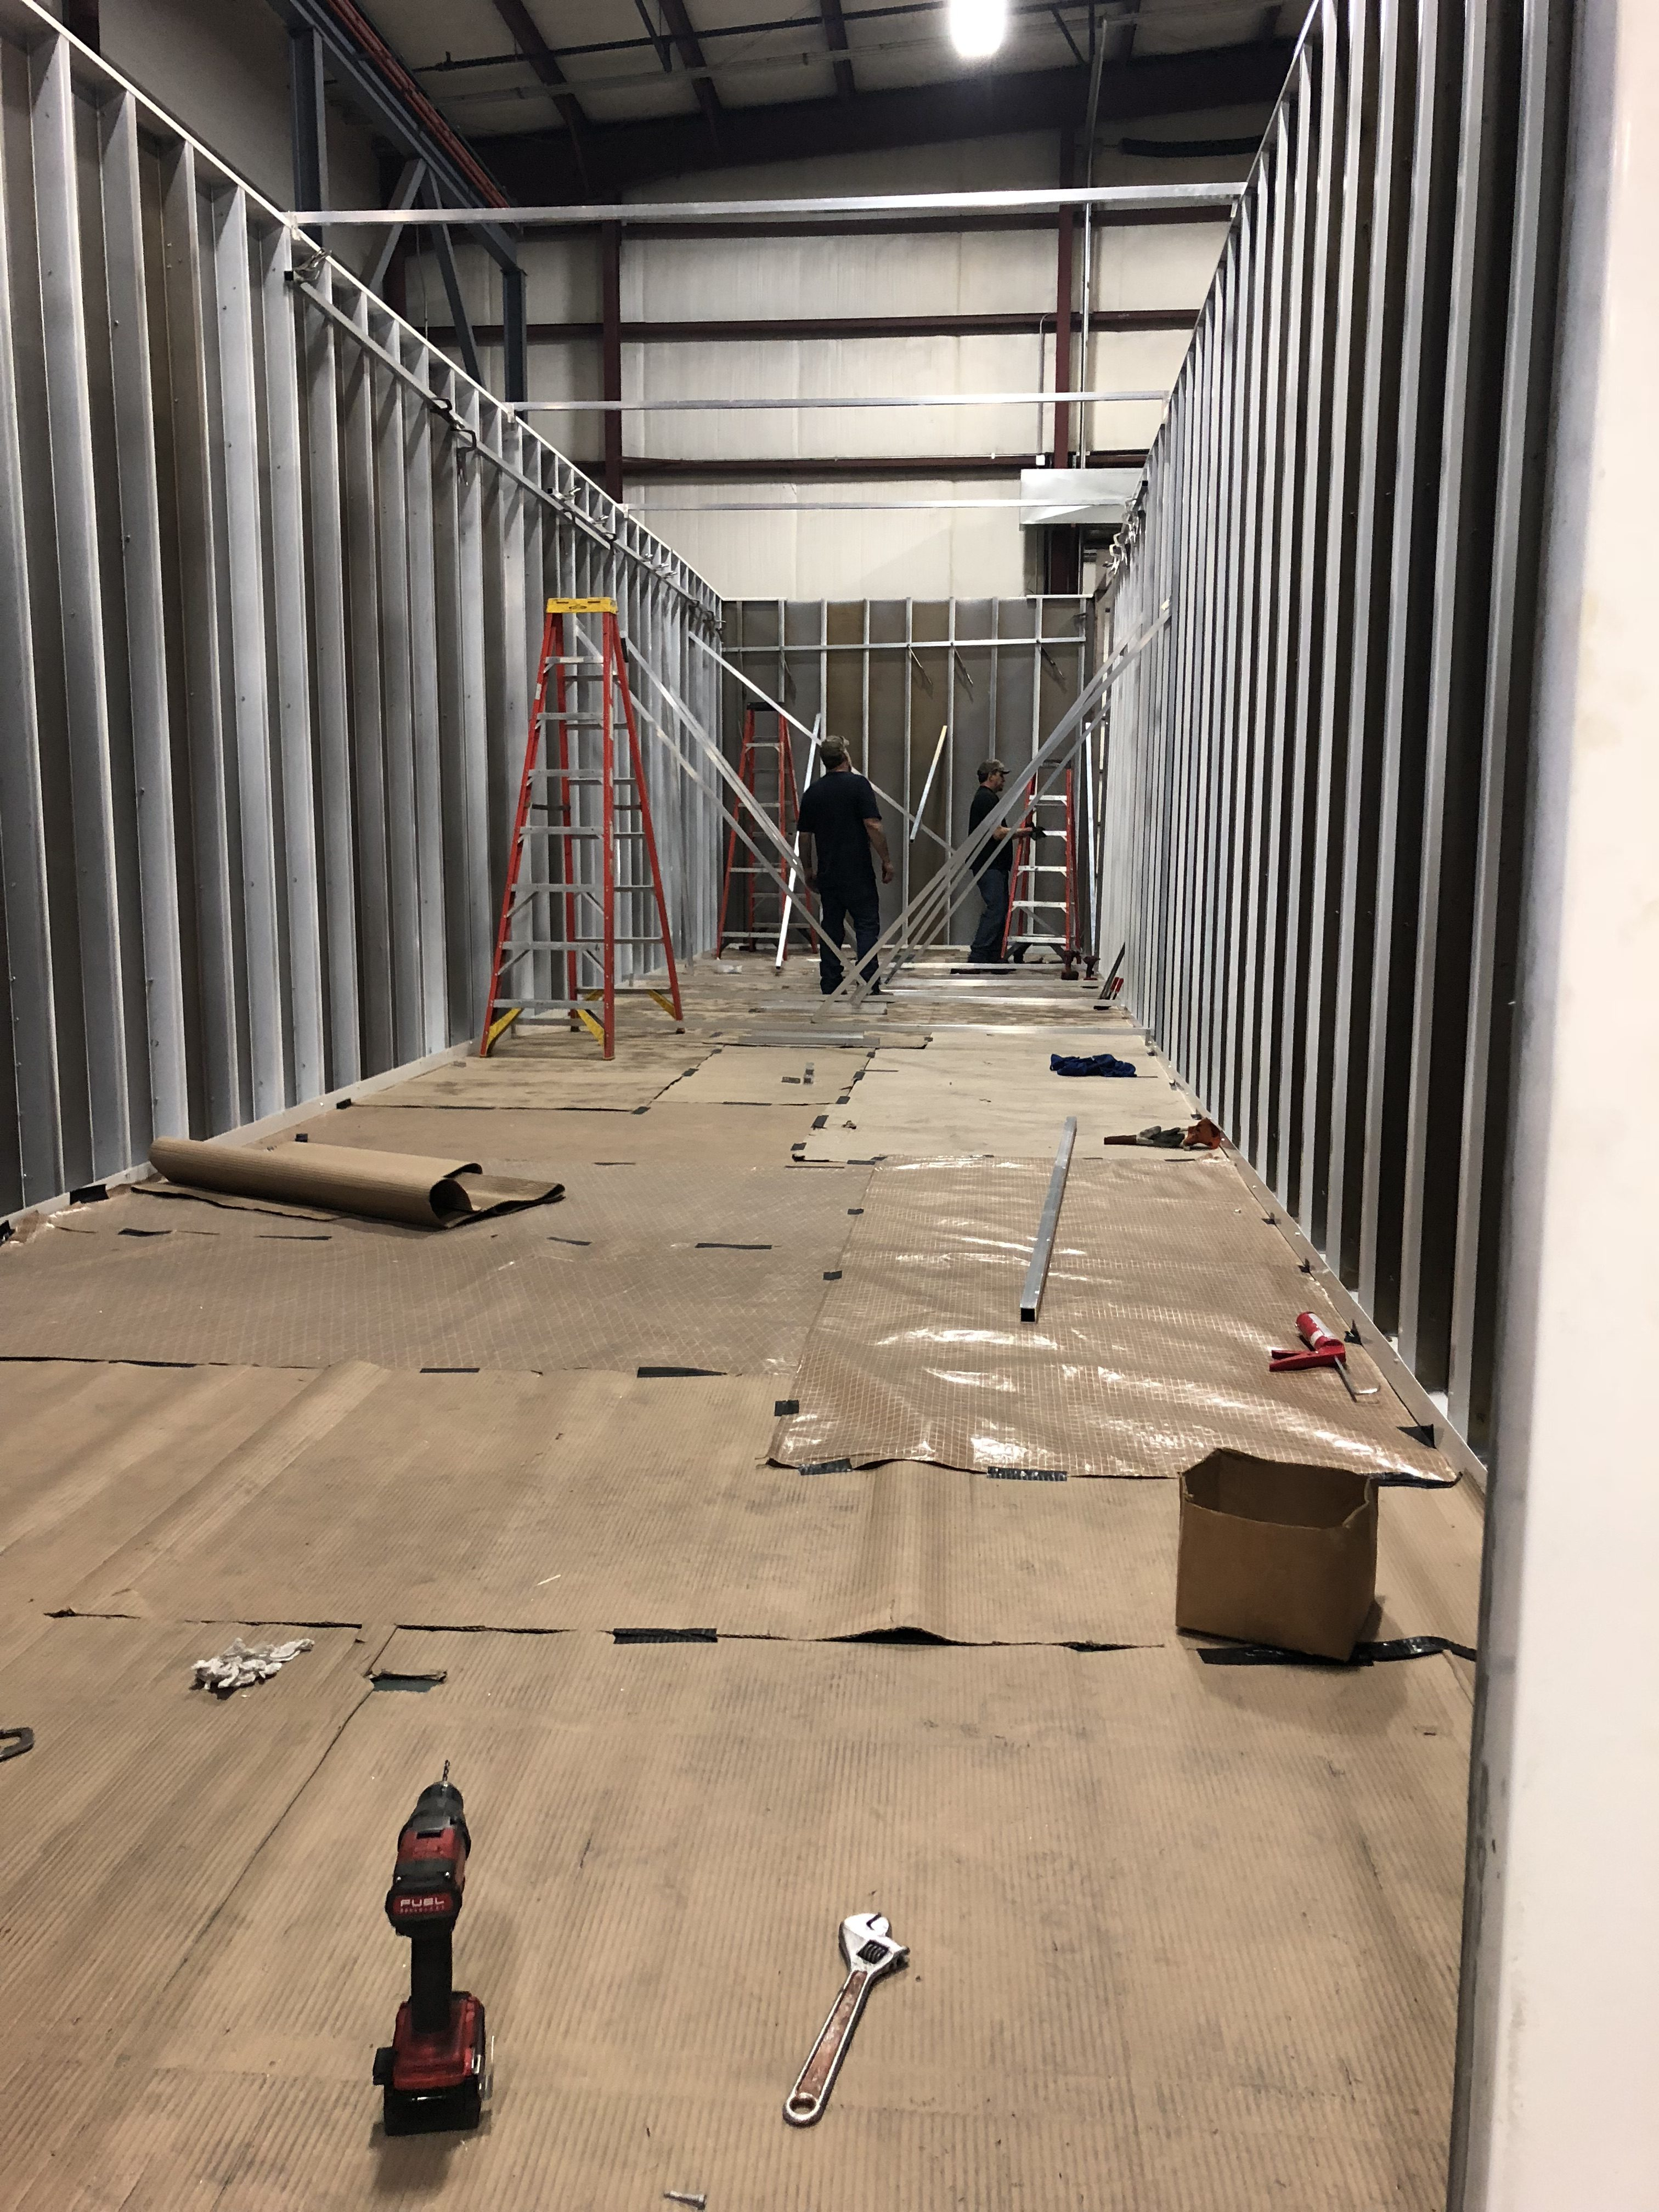 Inside Skid Building - Not Finished